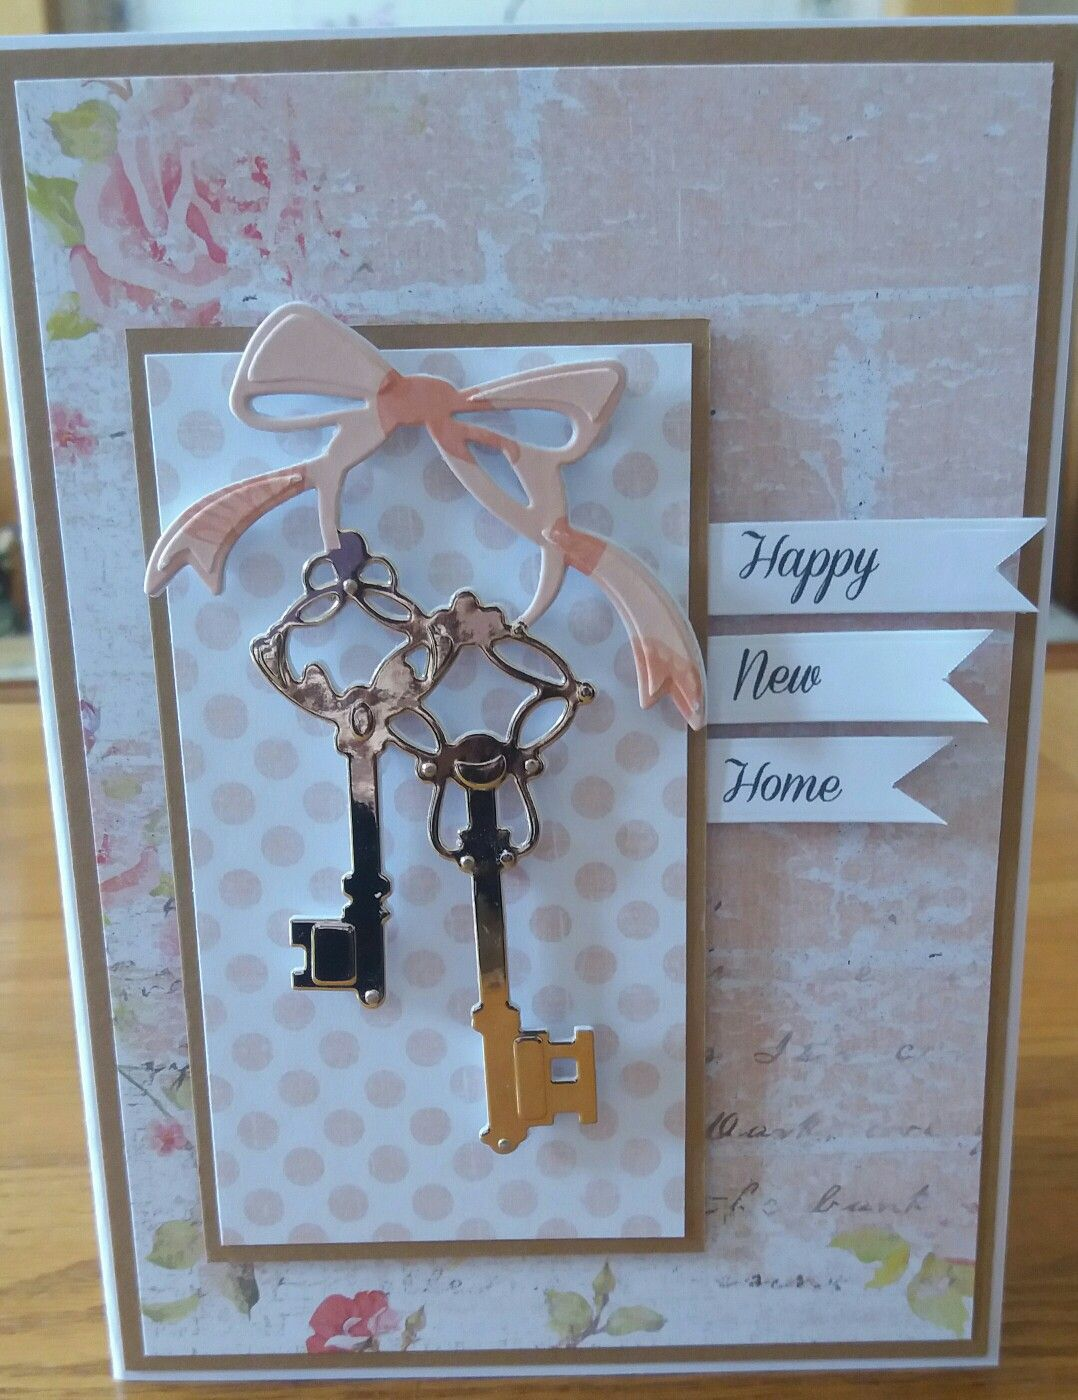 New Home Card Keys Are A Tonic Die Papers Are Anna Marie Designs Happy New Home Cards New Homes